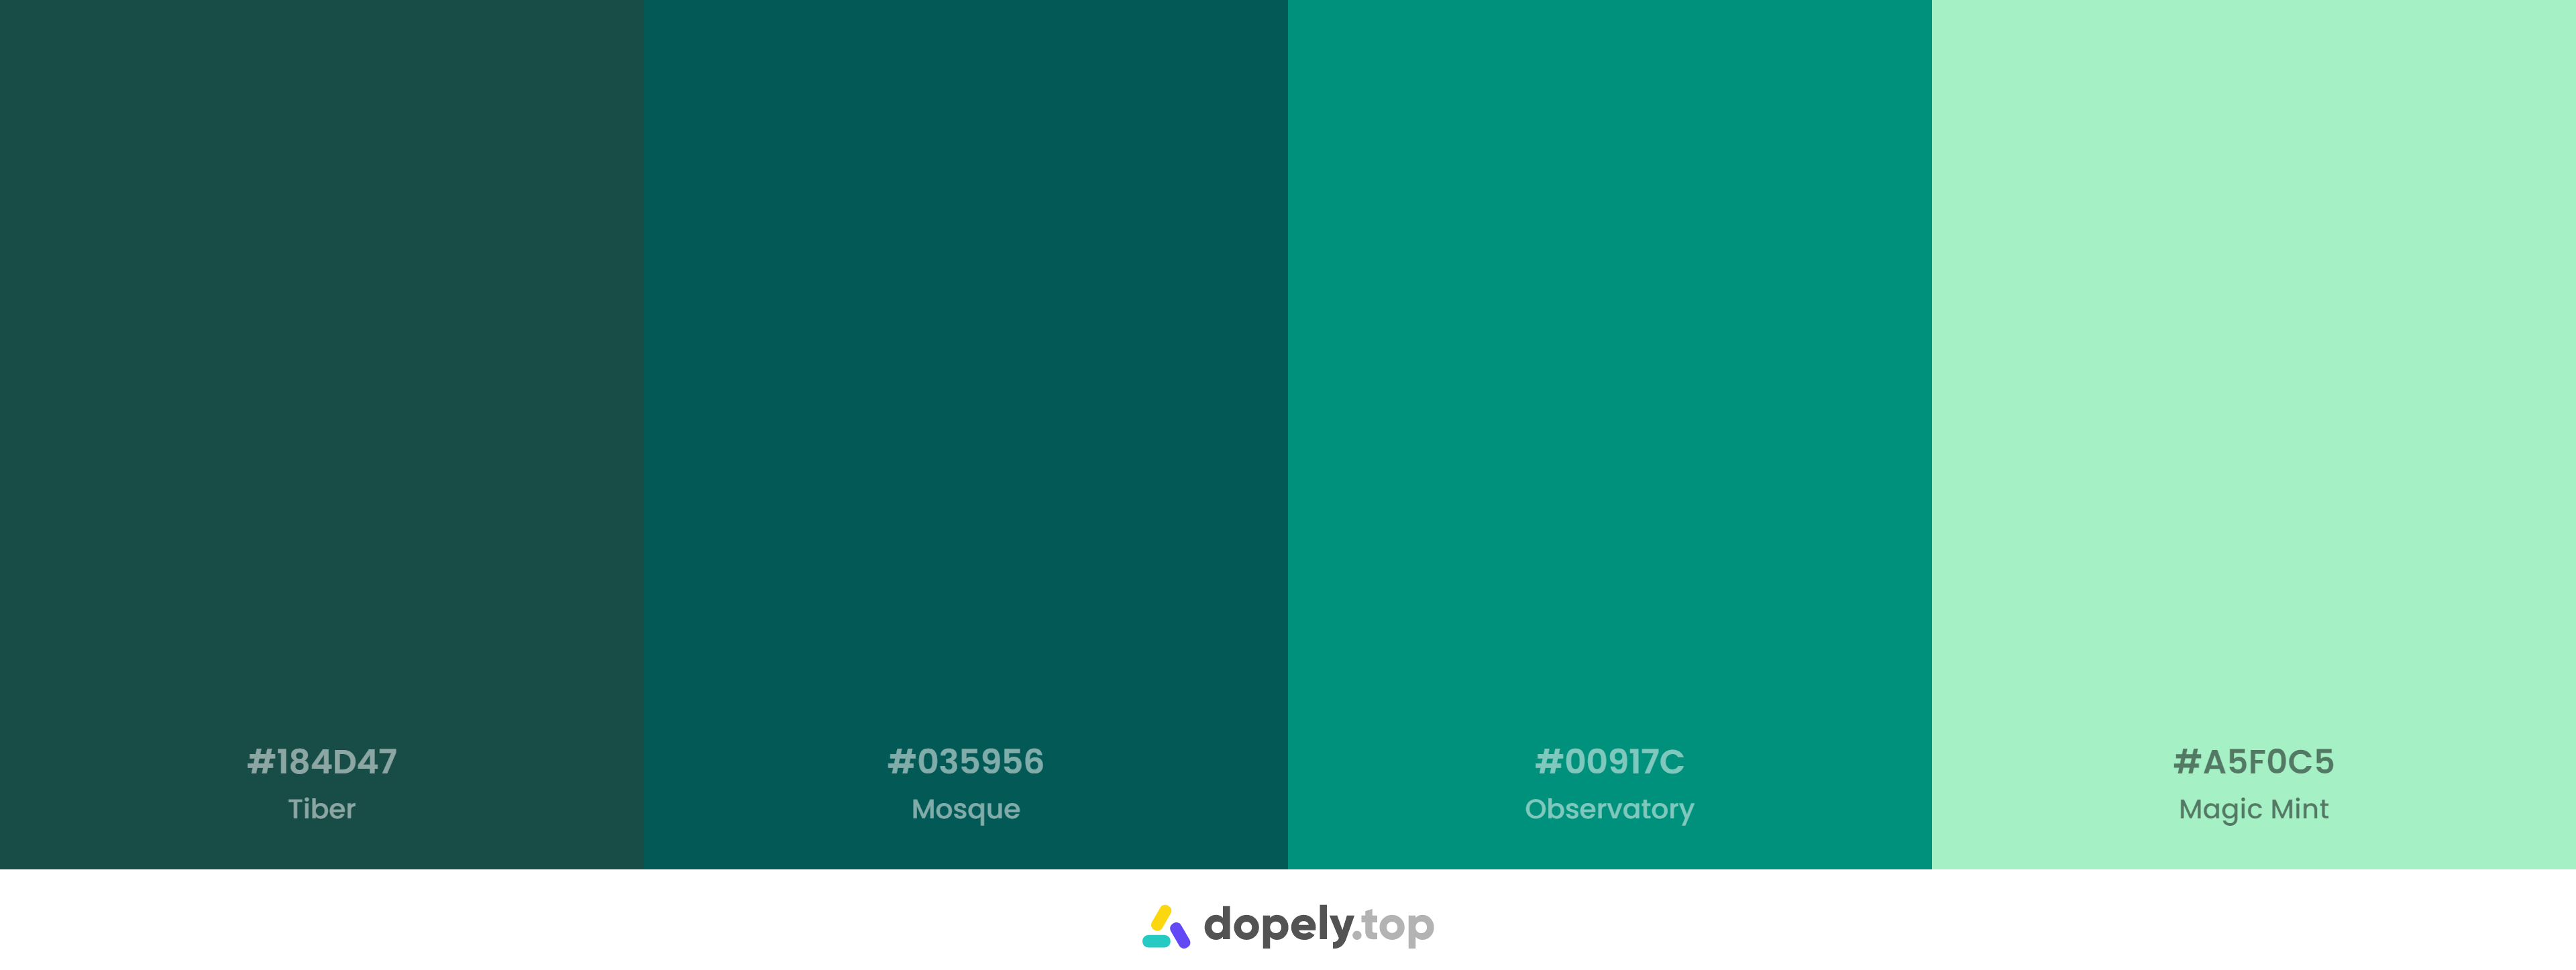 A green color example for dark mode